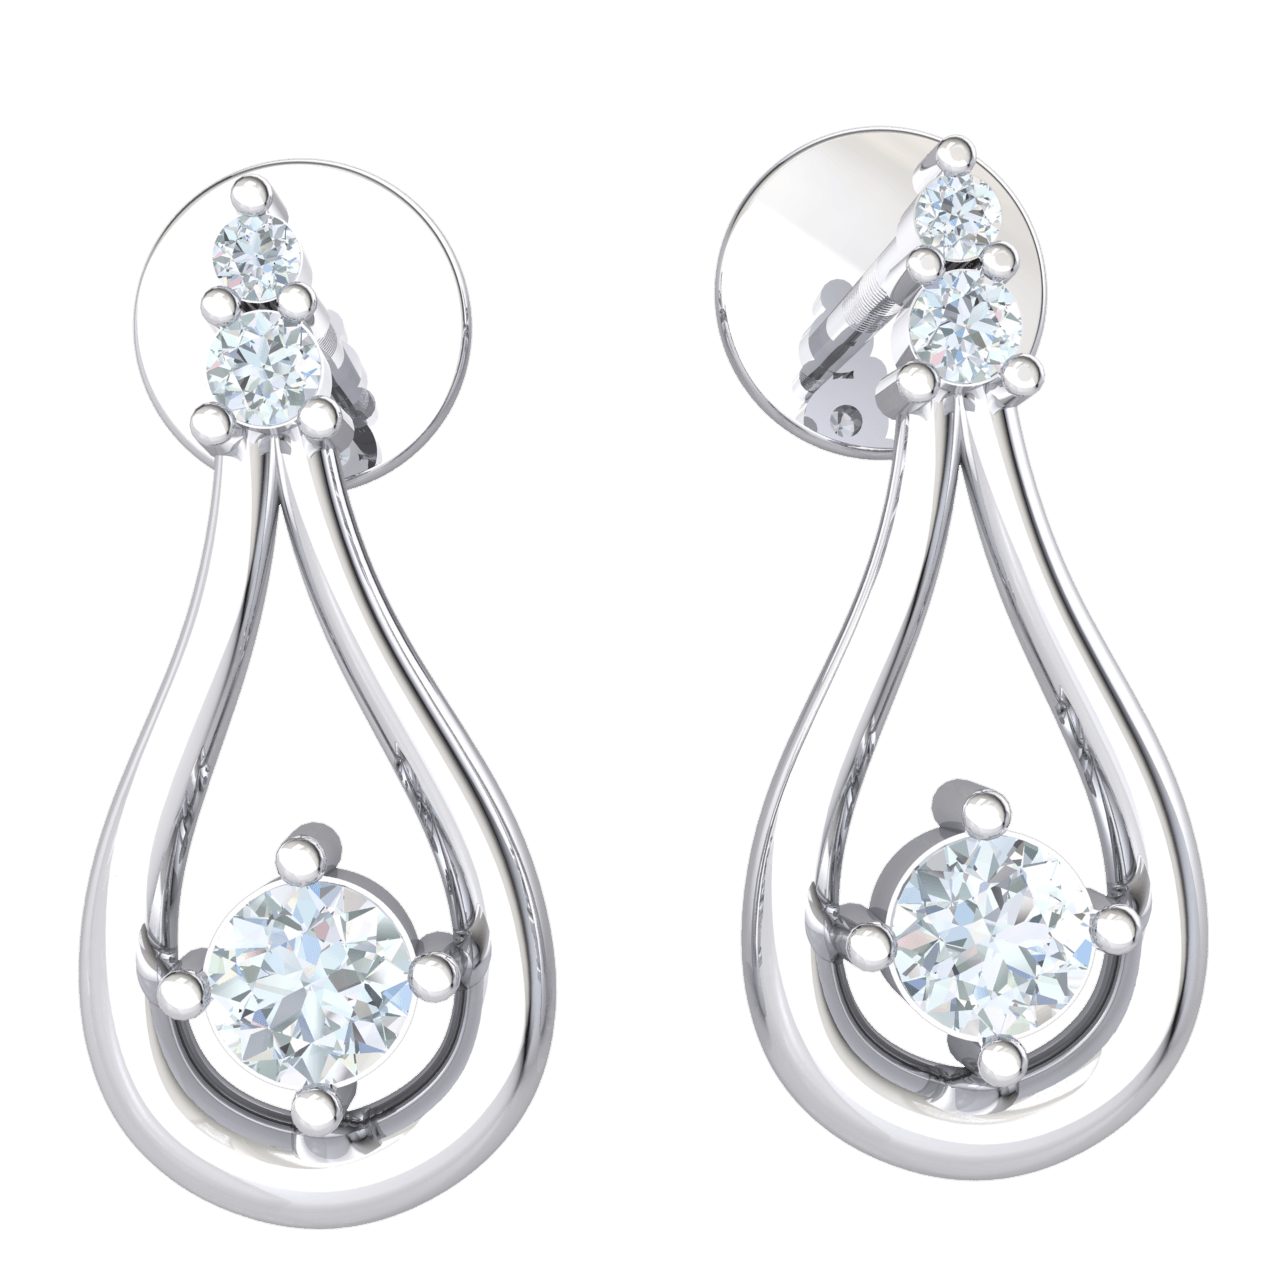 0.15 Ctw Absolutely Timeles Real Teardrop Earrings With 3 Truely Beautiful White Diamonds in GH I1 14 kt Gold